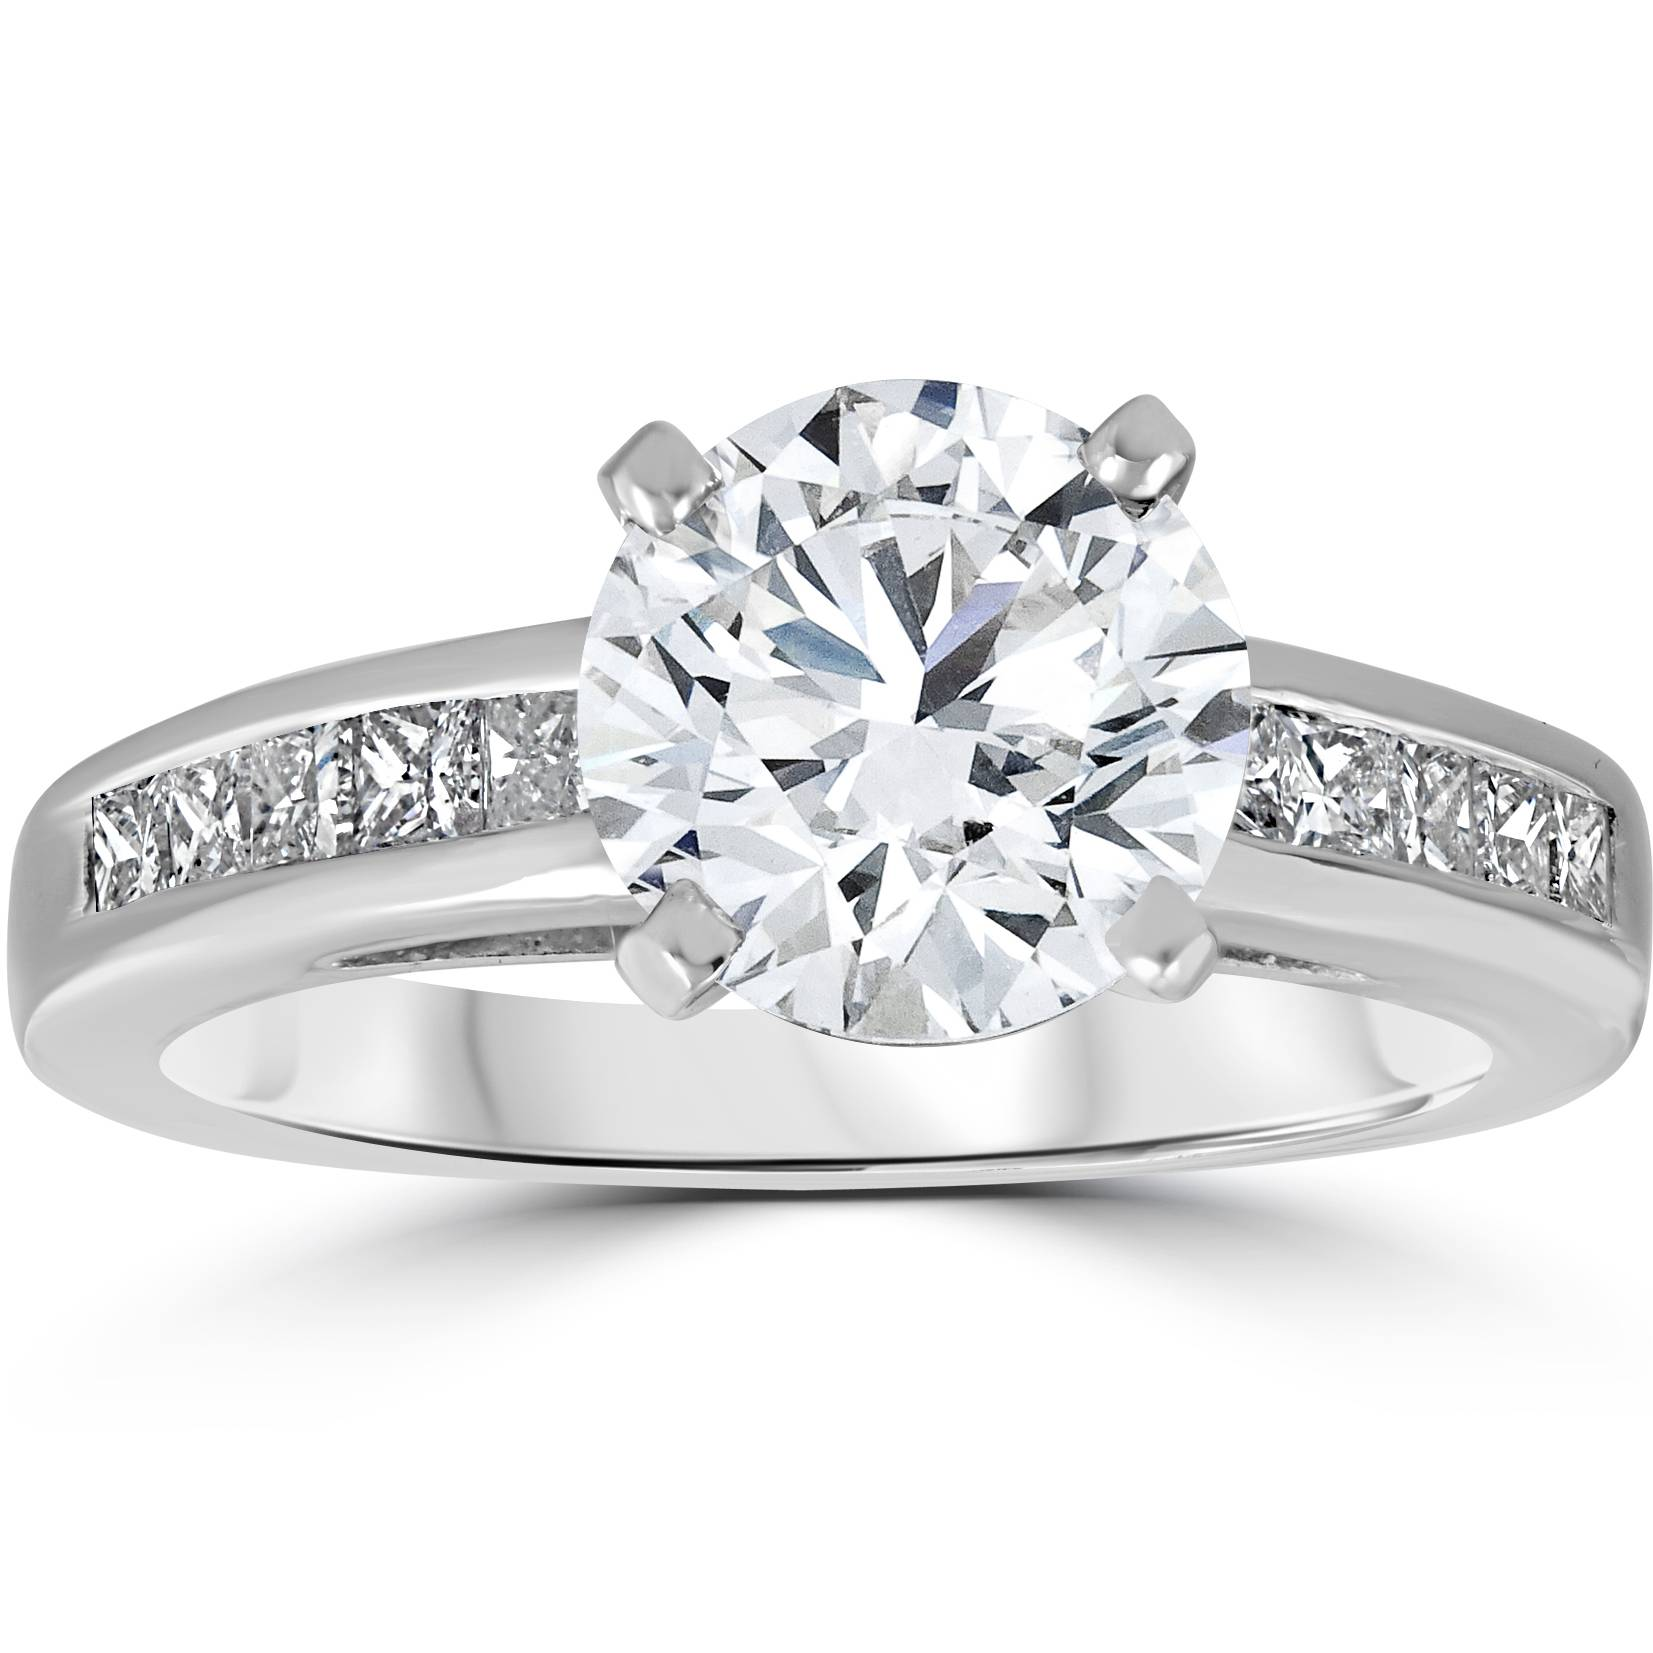 Diamond Engagement Ring 2 1 2 Carat Princess   Round Solitaire ... c87193bce337